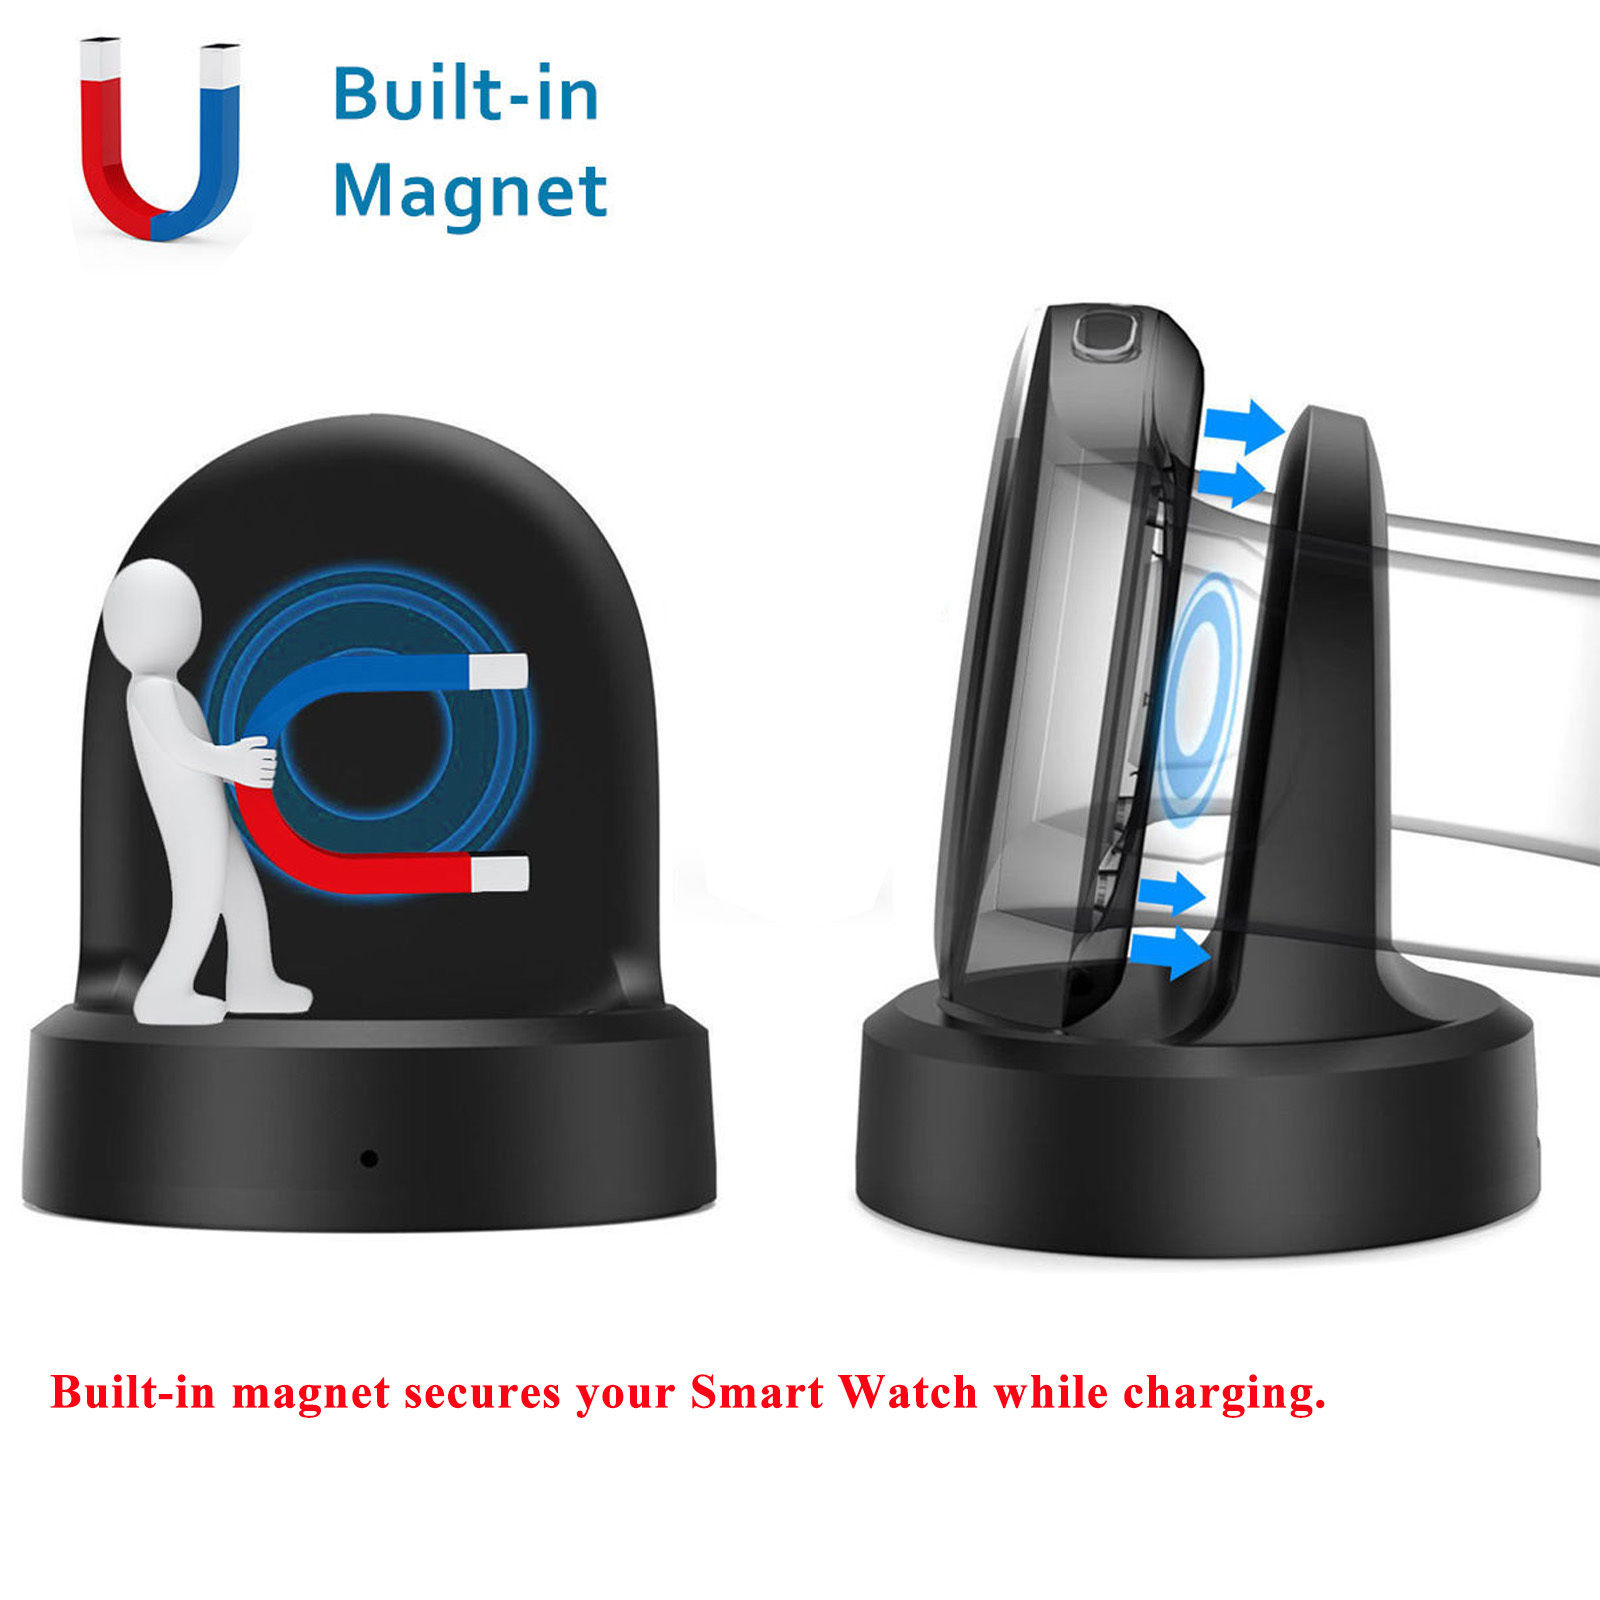 qi wireless charging dock charger stand cradle for samsung galaxy gear s3 s2 ebay. Black Bedroom Furniture Sets. Home Design Ideas